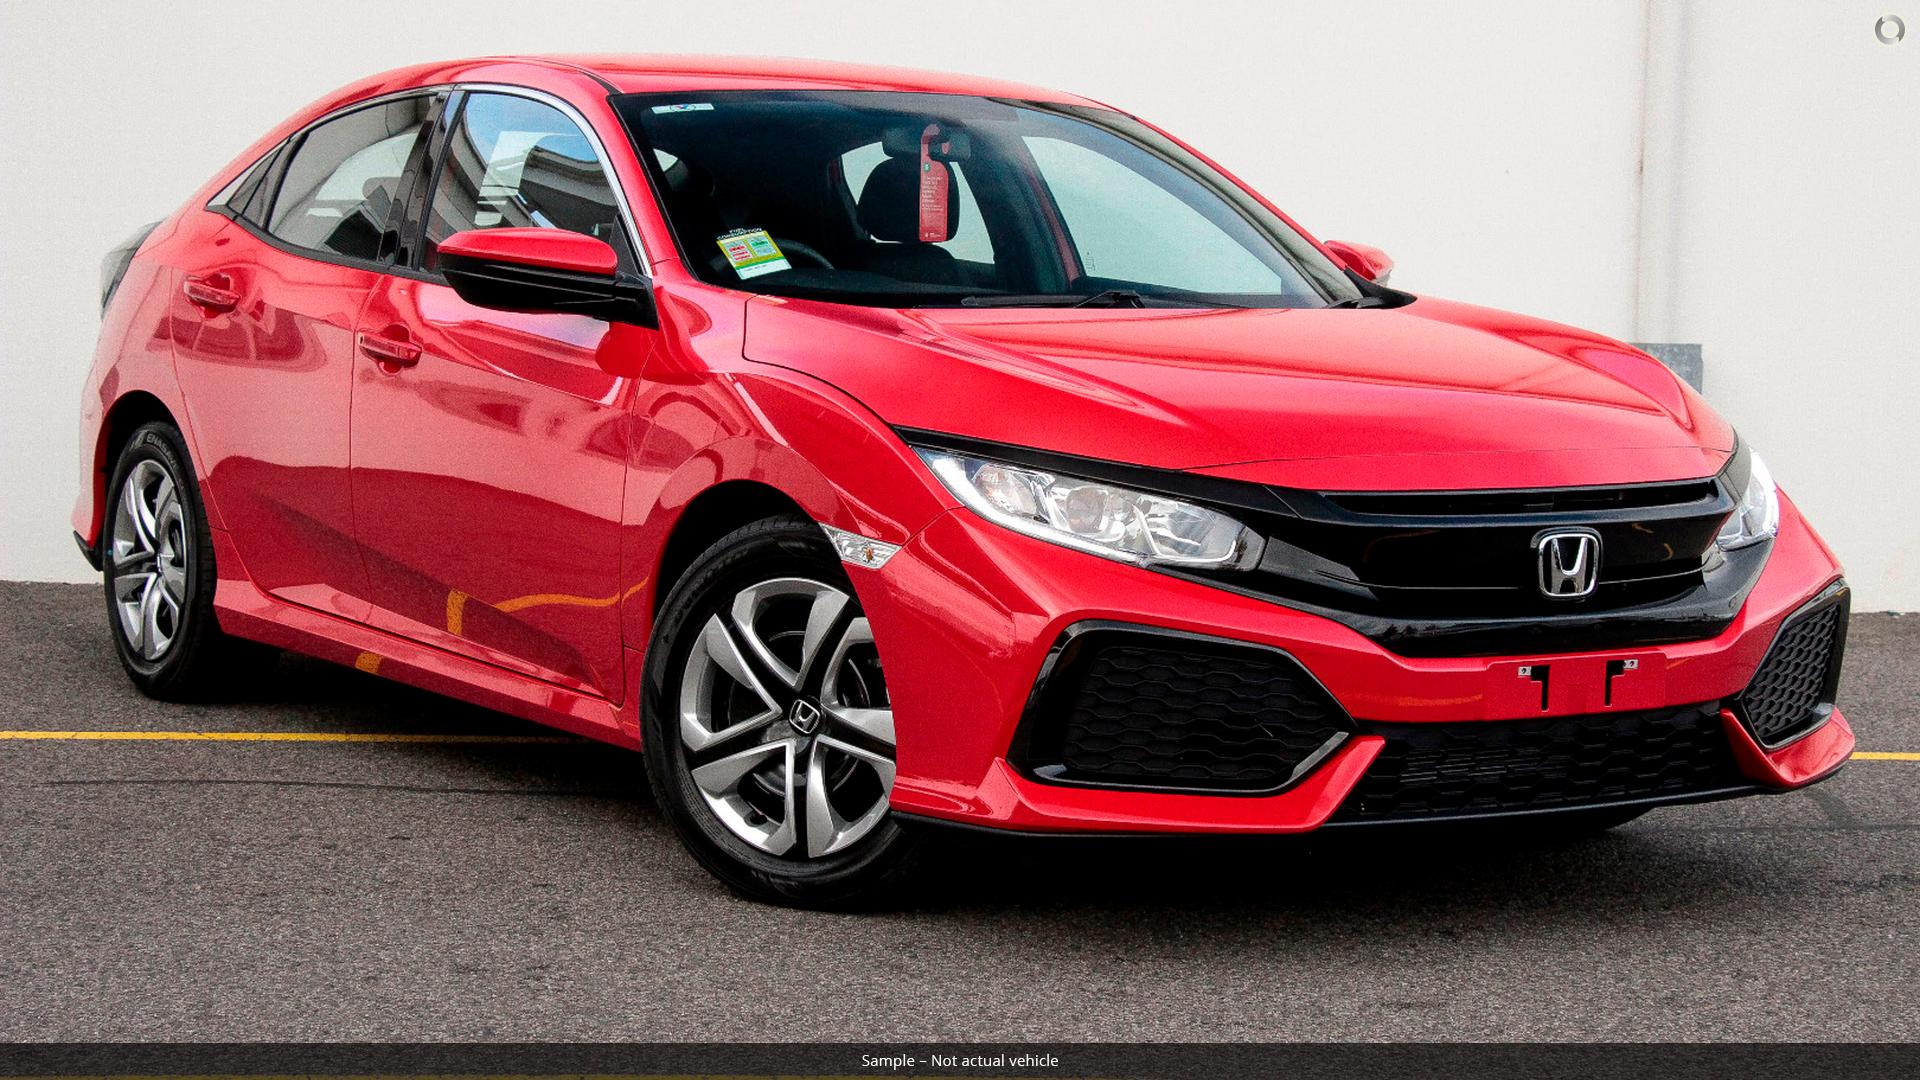 2019 Honda Civic VTi 10th Gen